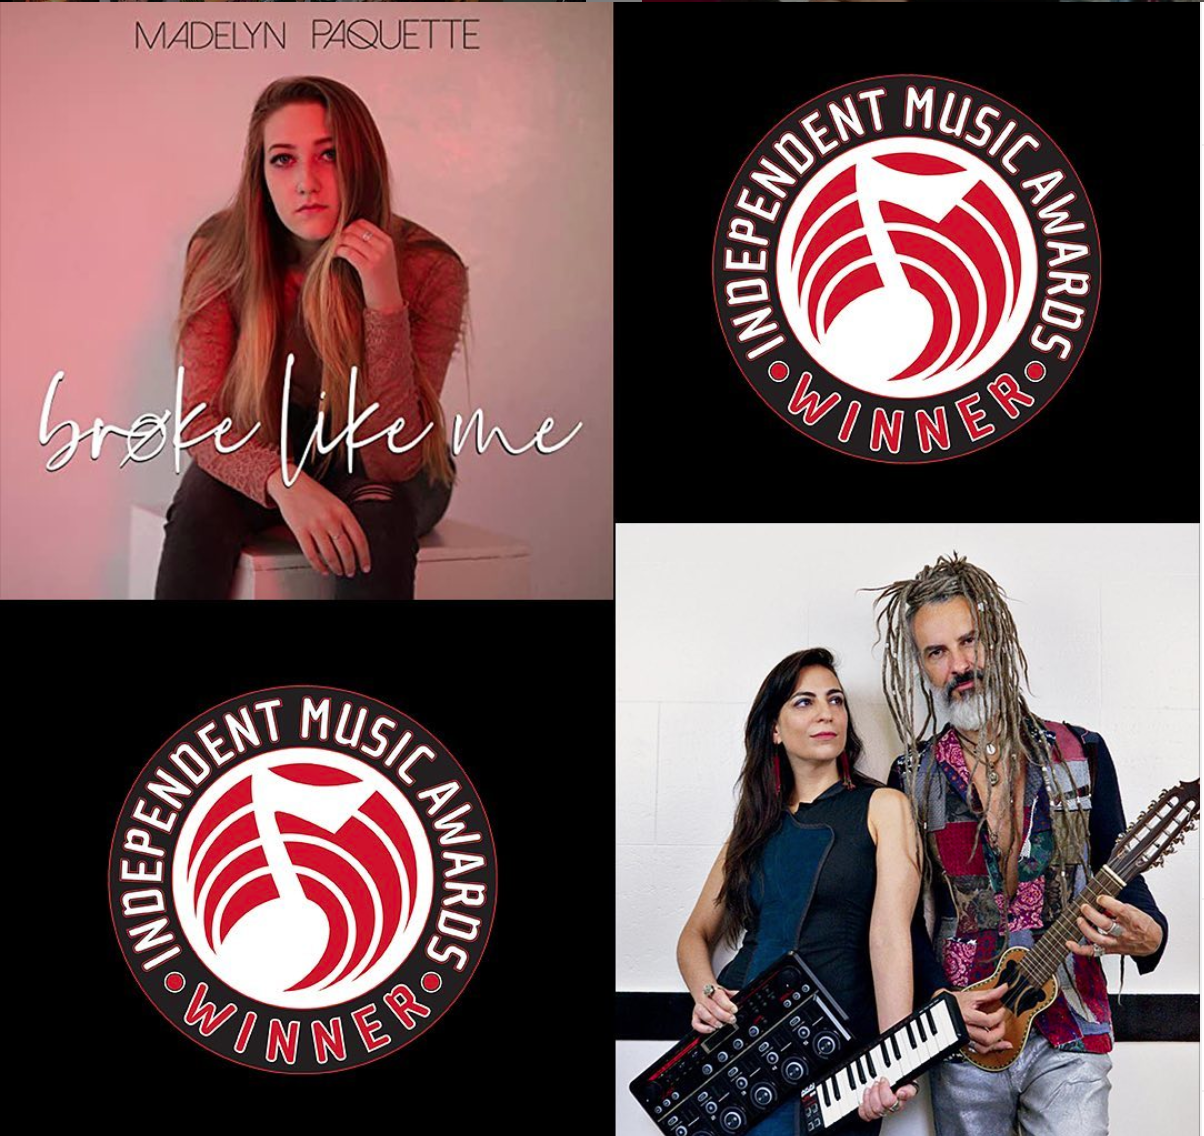 Independent Music Award winners Sofia Rei and Madelyn Paquette shown alongside IMA winners badges